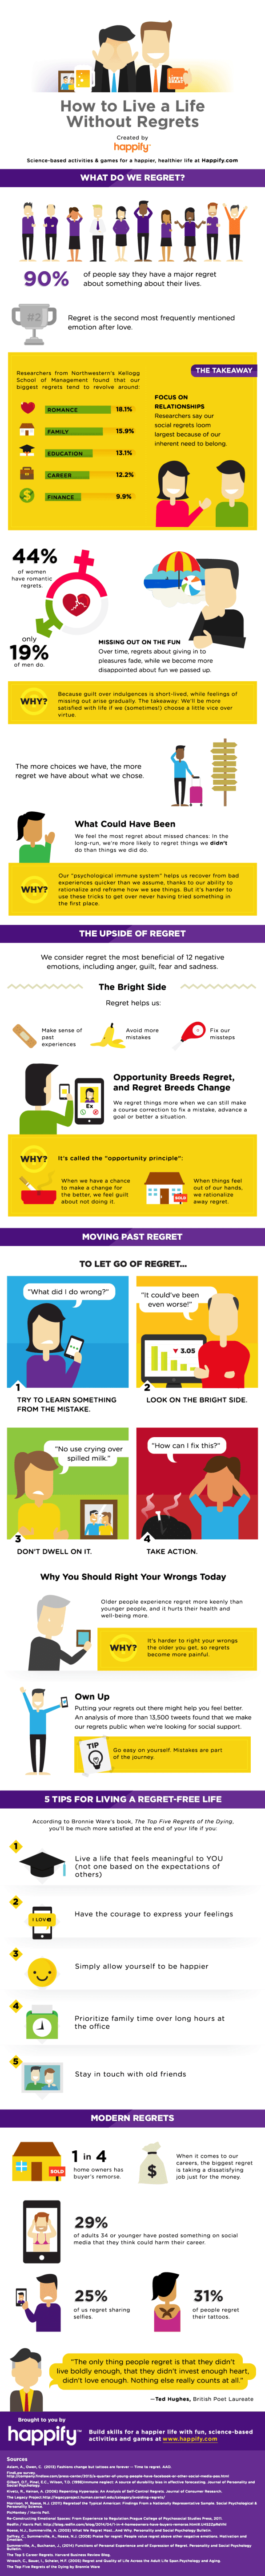 Infographic: Here's How to Live a Regret-Free Life